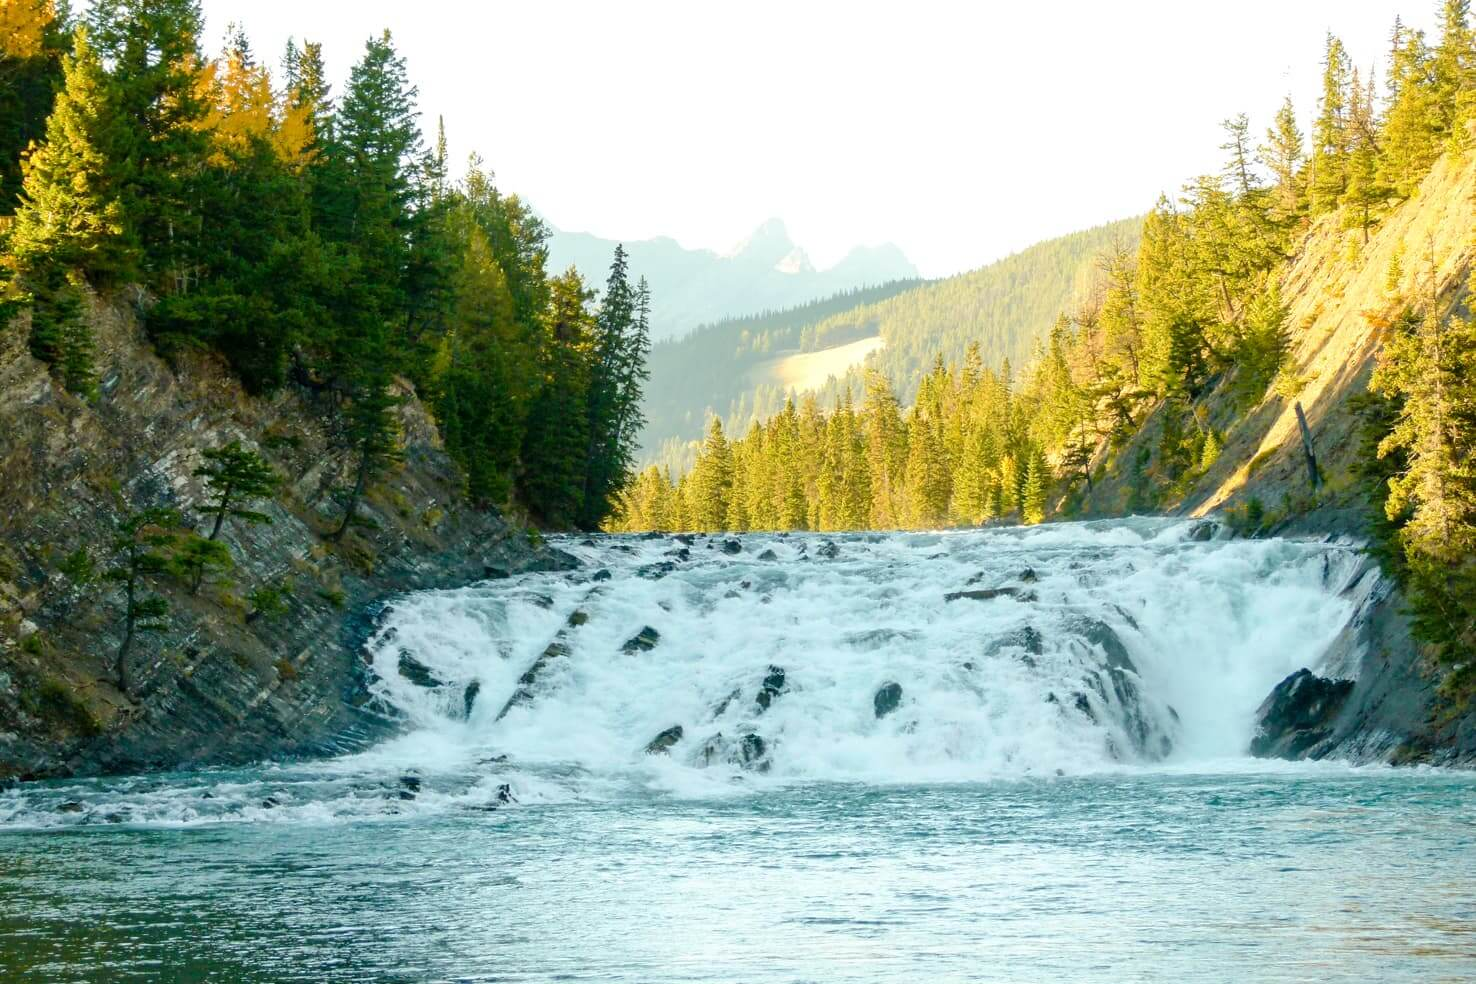 100 best things to do in Banff National Park, Canada - Ride the waves of Bow River